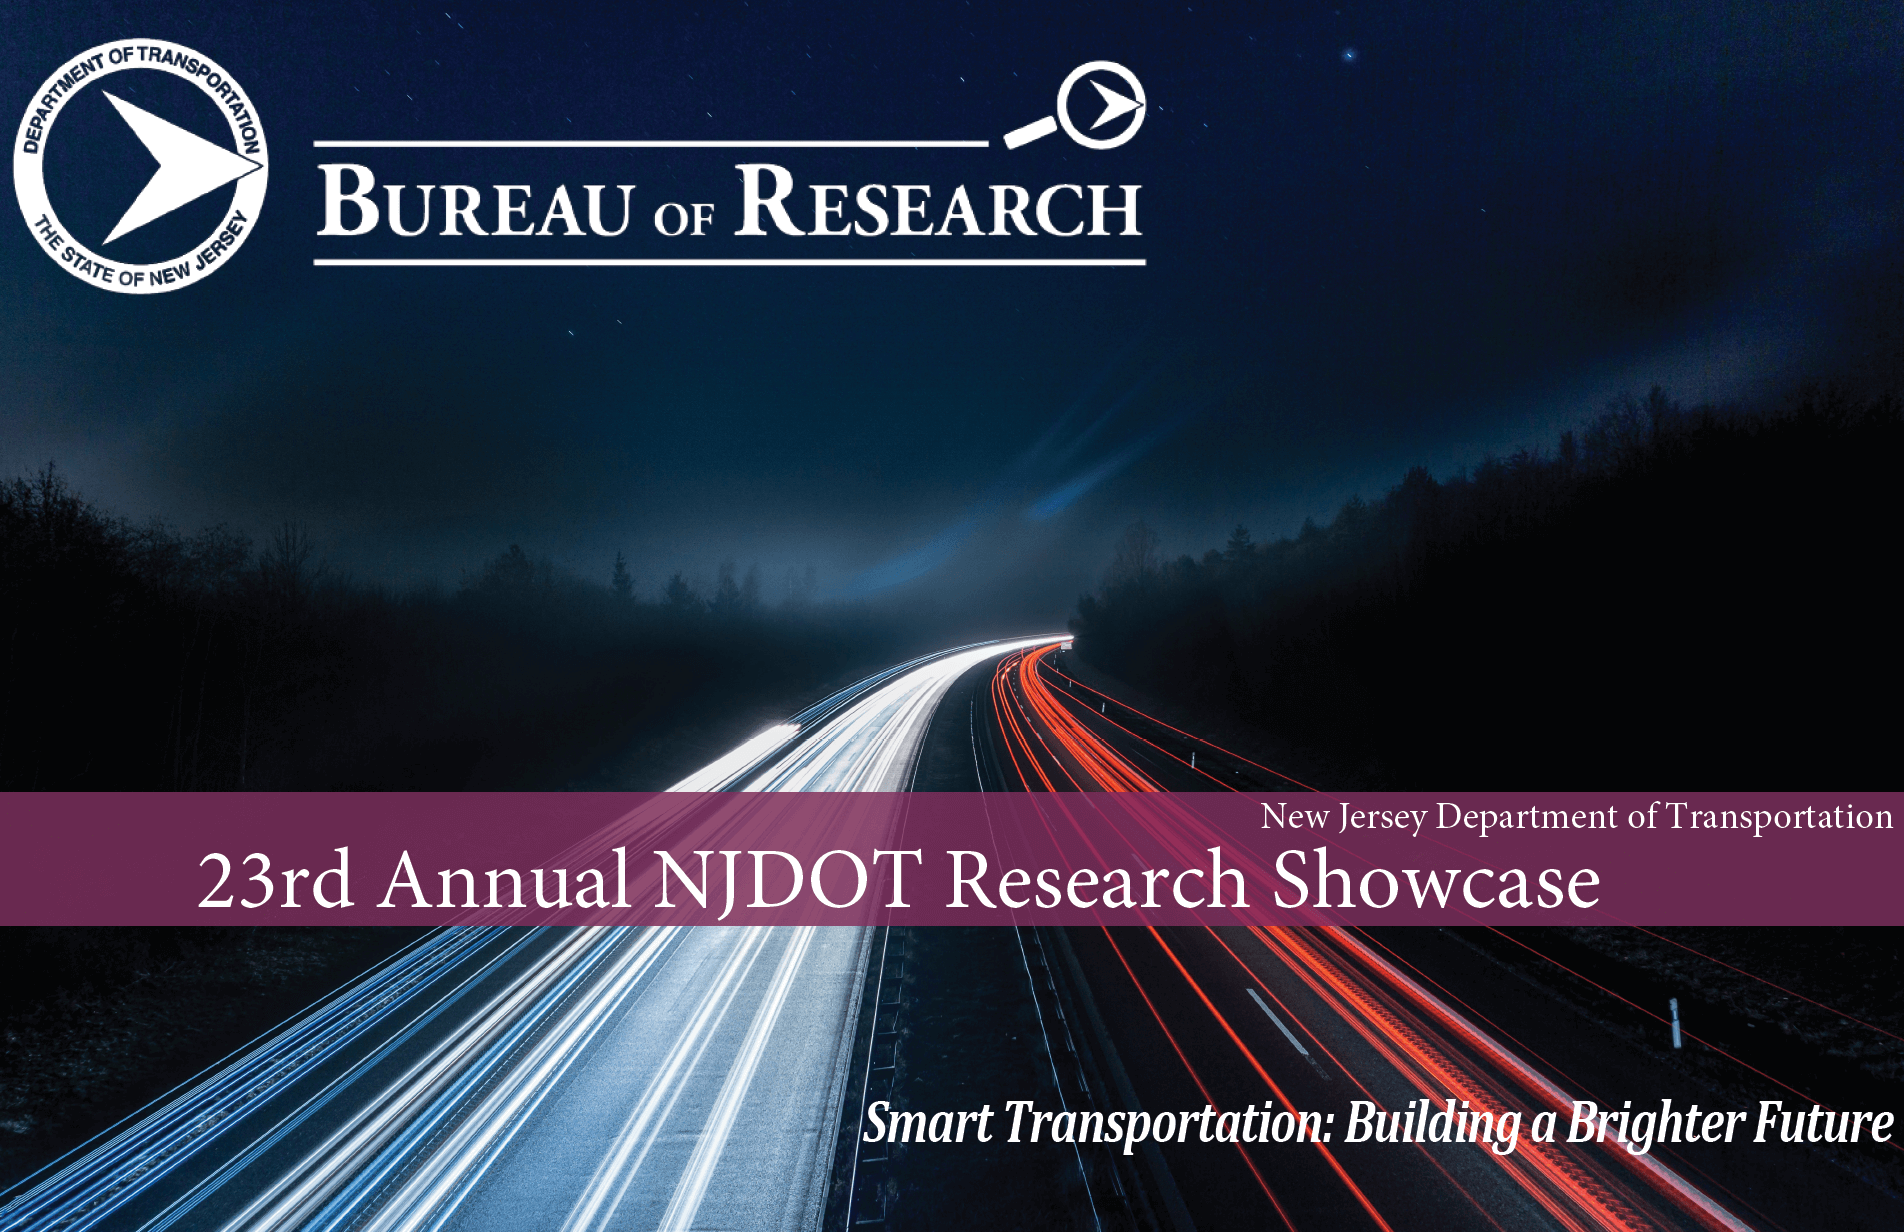 23rd Annual NJDOT Research Showcase